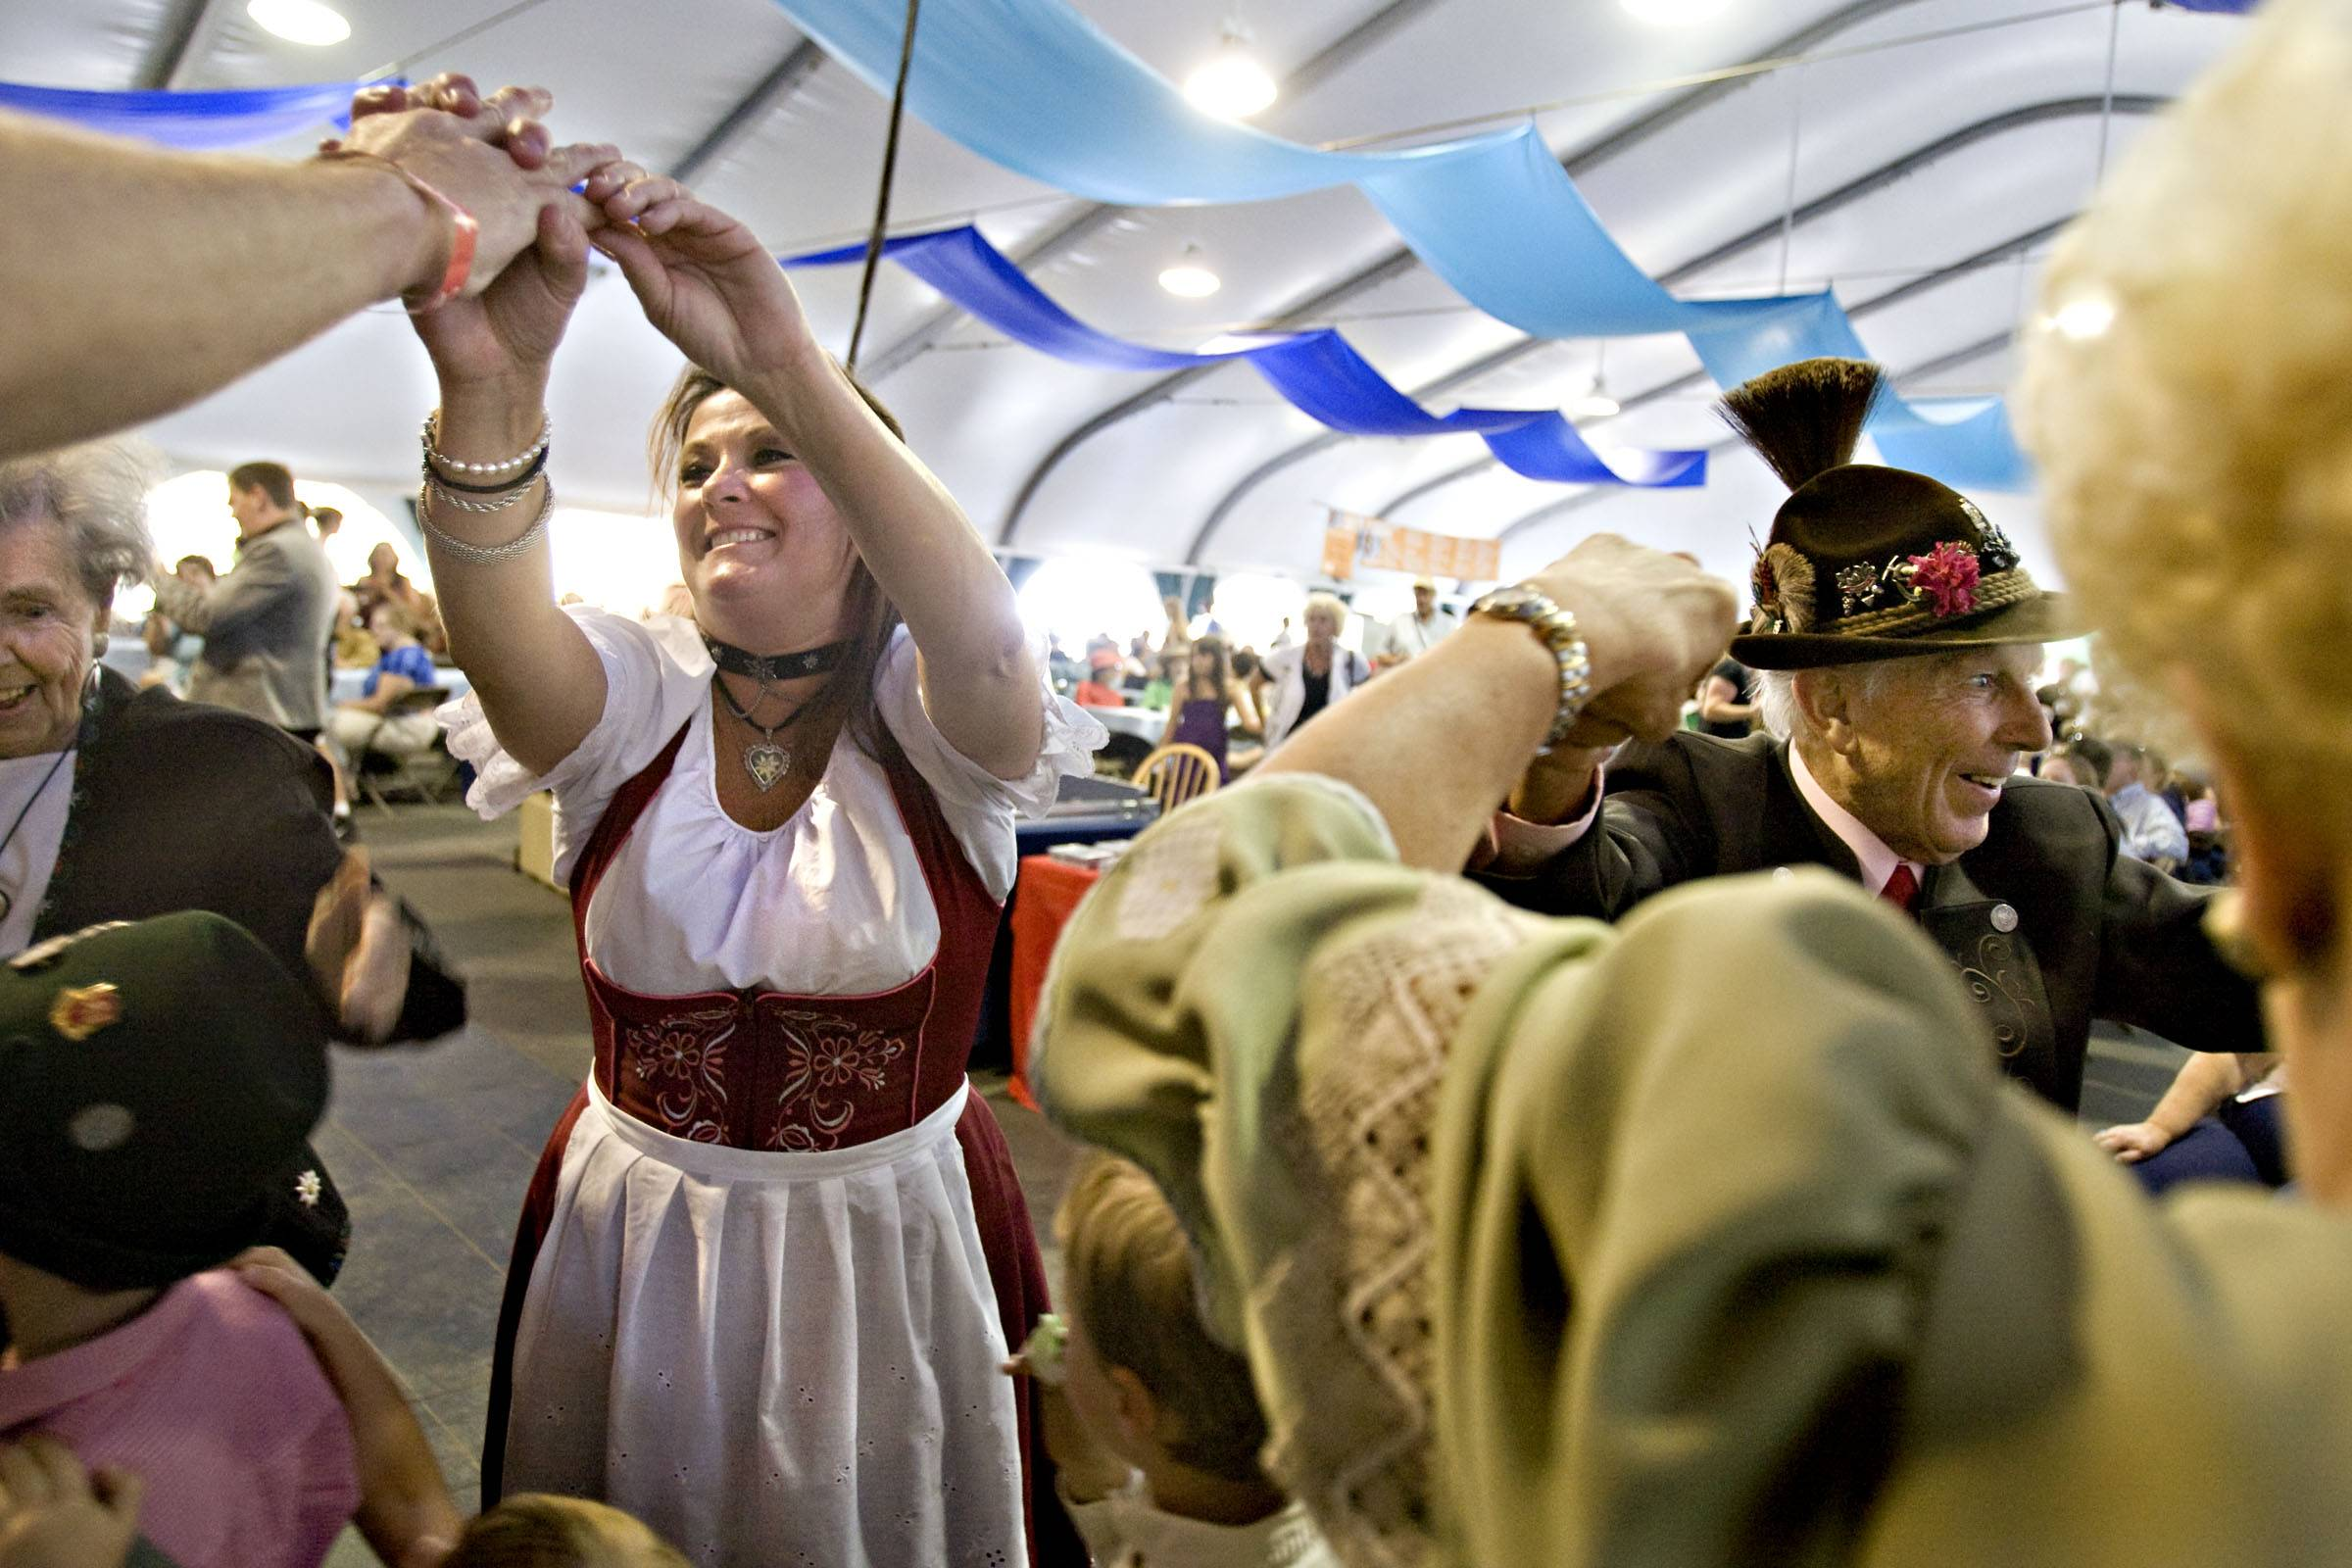 People enjoy dancing to the Bavarian musical group Alpiners USA as part of the Oktoberfest celebration at Snowbird Mountain Resort in Utah. Utah's state liquor commission is tightening up on issuing permits for weekend events like Snowbird Ski Resort's annual Oktoberfest.